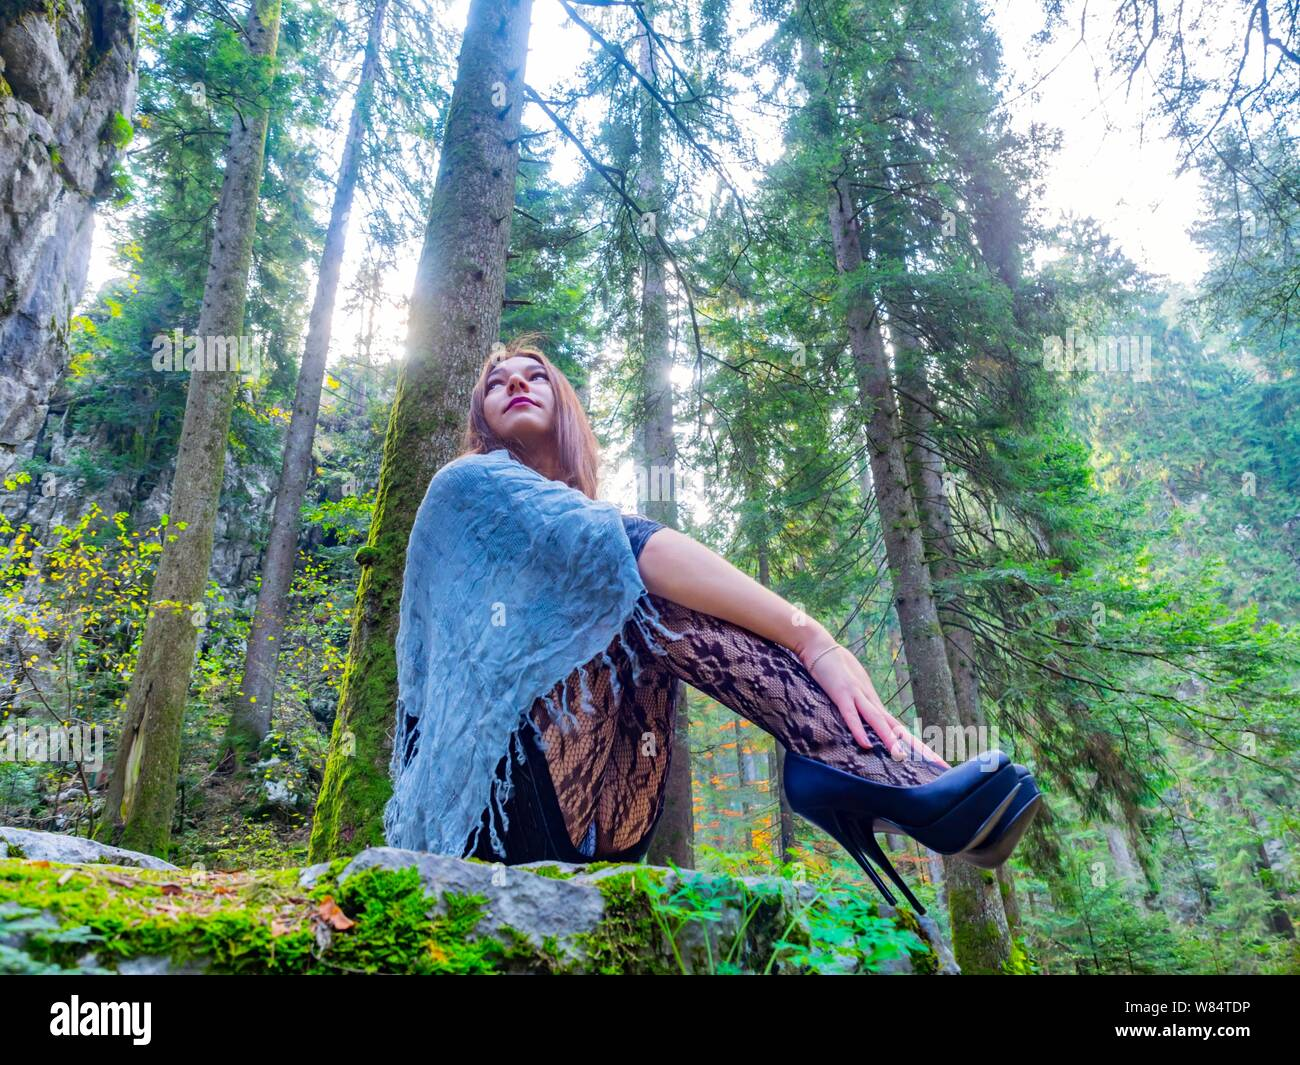 Beautiful young female in nature is sitting in Green forest looking away concerned serious tucked legs spike spiked Black very high-heels sideview Stock Photo